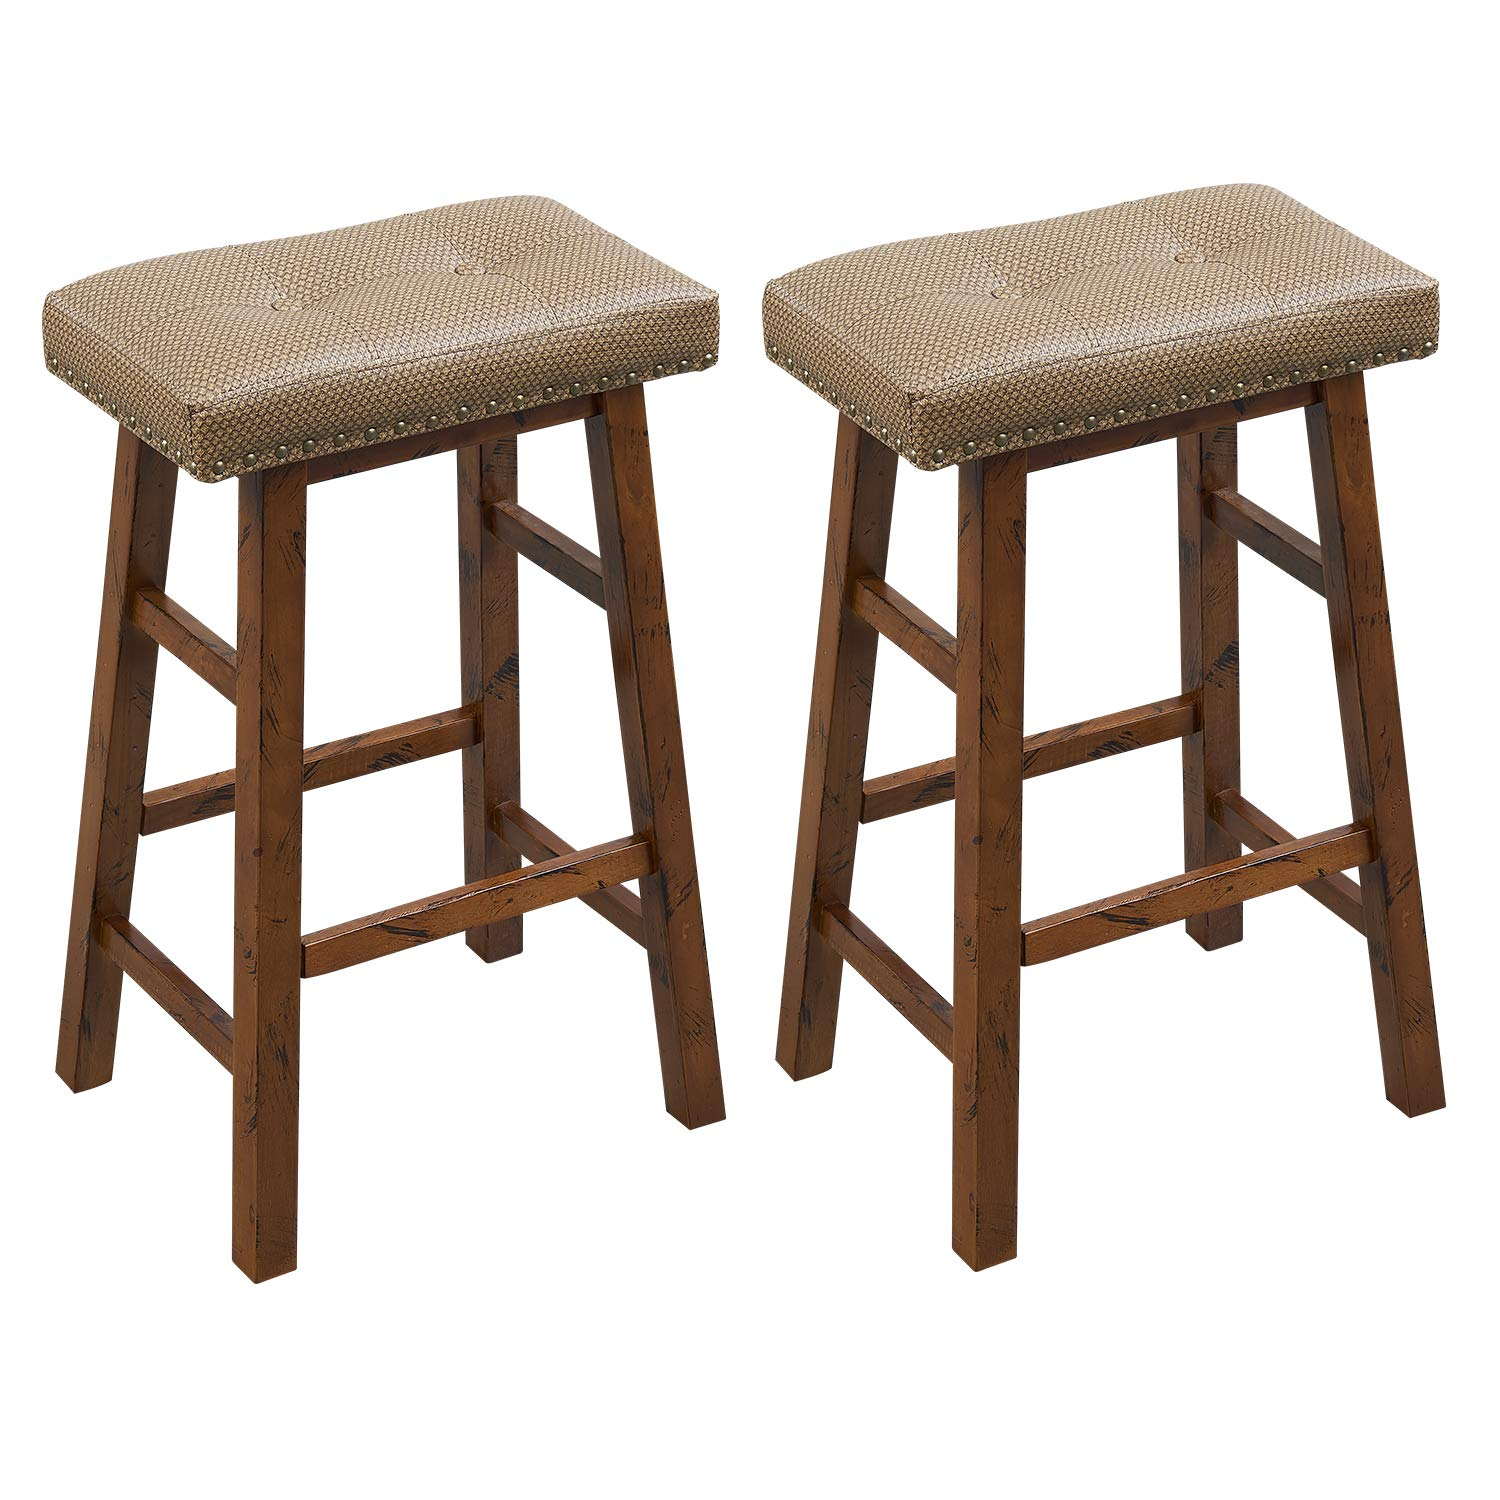 O&K FURNITURE Wood Saddle Bar Stool, Upholstered Backless Bar Stool, Faux Leather BarStools with Brass Nailhead Studs-30'', Bar Height, Pack of 2